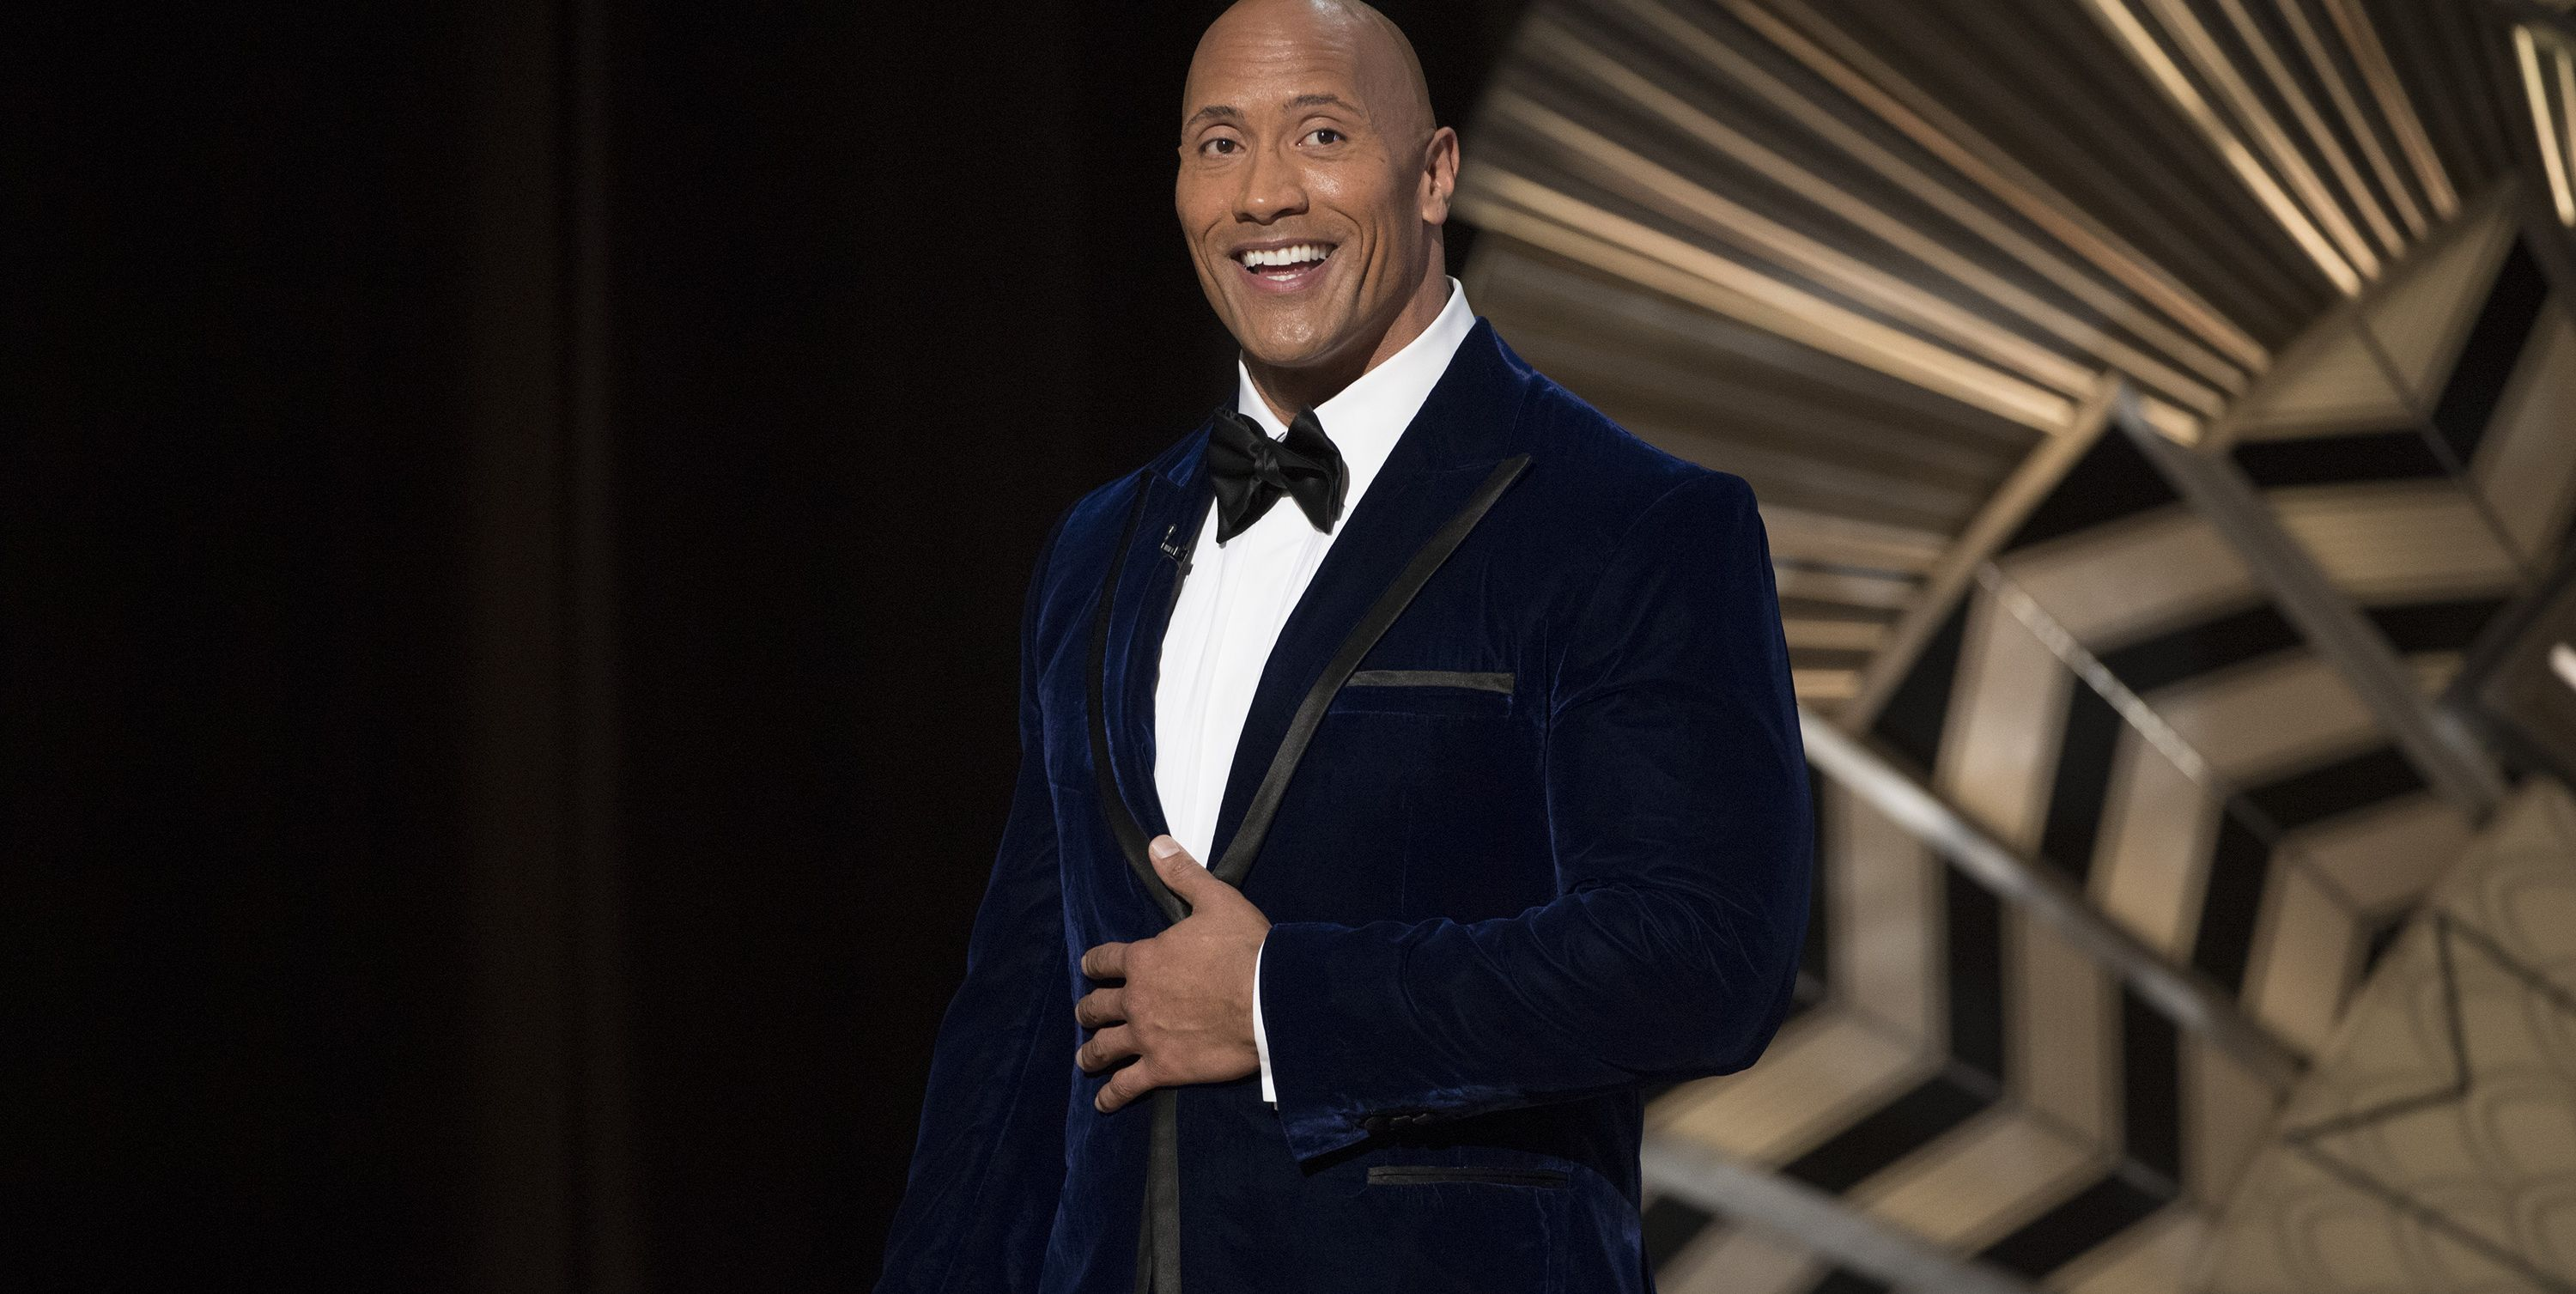 Dwayne Johnson Is Seriously Thinking About Running For President